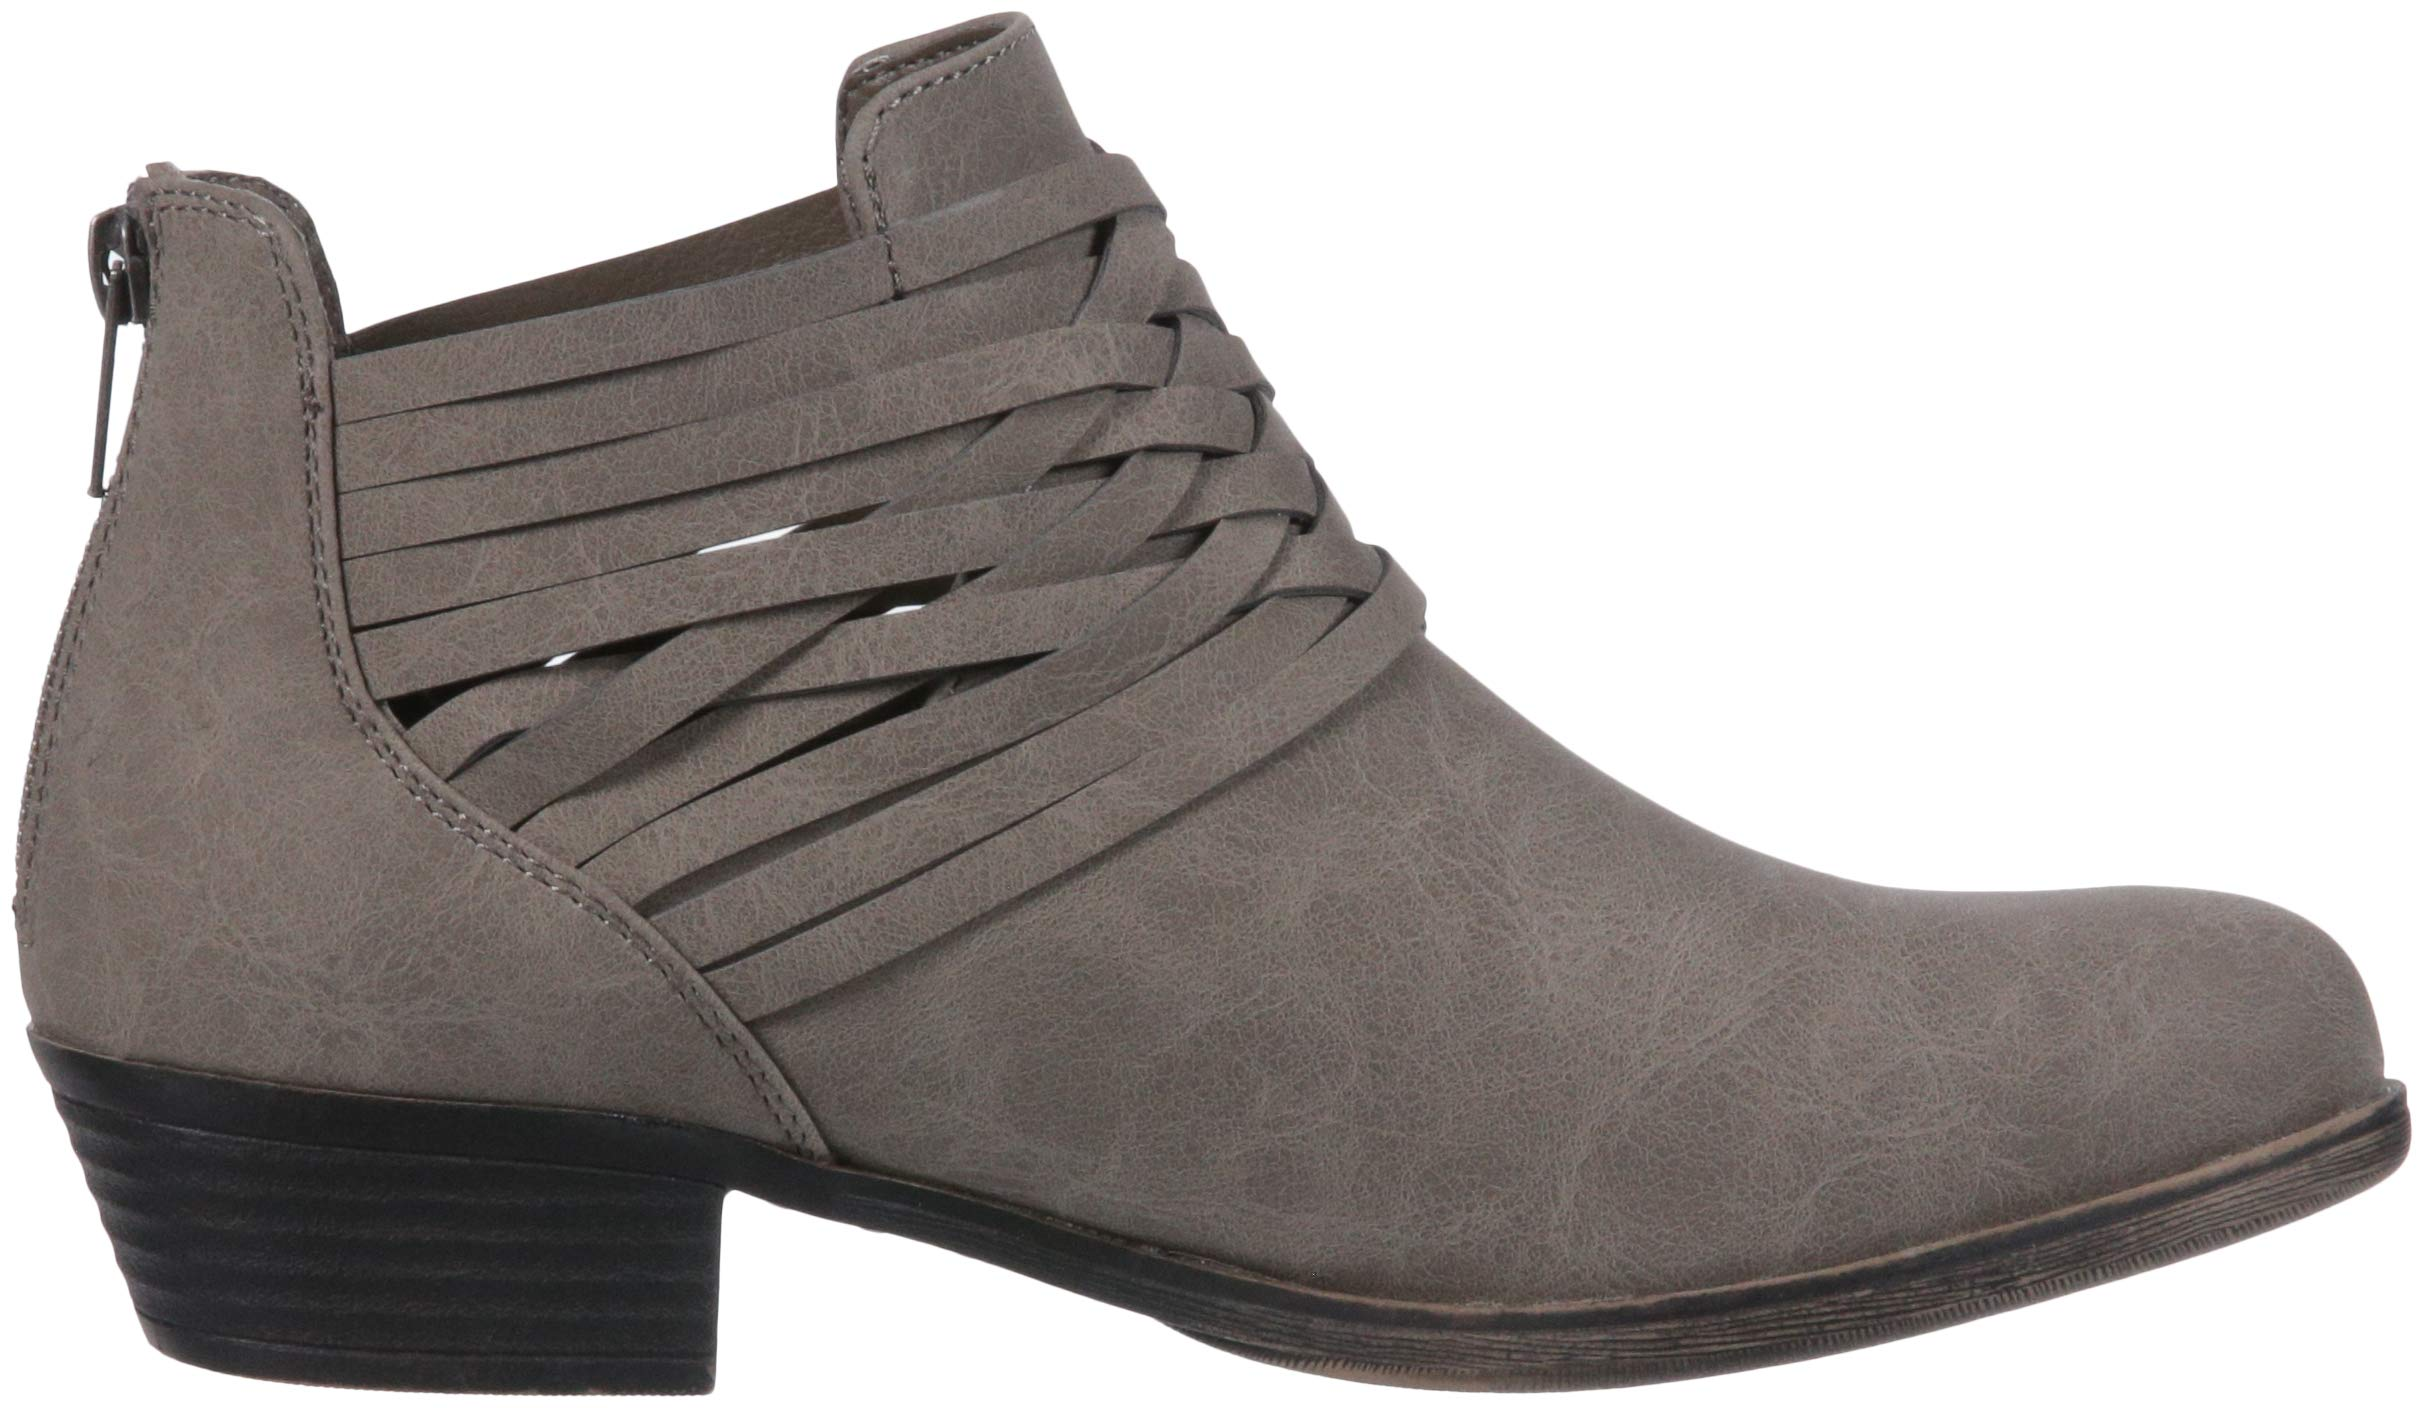 Sugar Women's Rhett Casual Boho Short Bootie with Criss Cross Straps Ankle Boot, Grey Distressed, 9 Medium US by Sugar (Image #7)